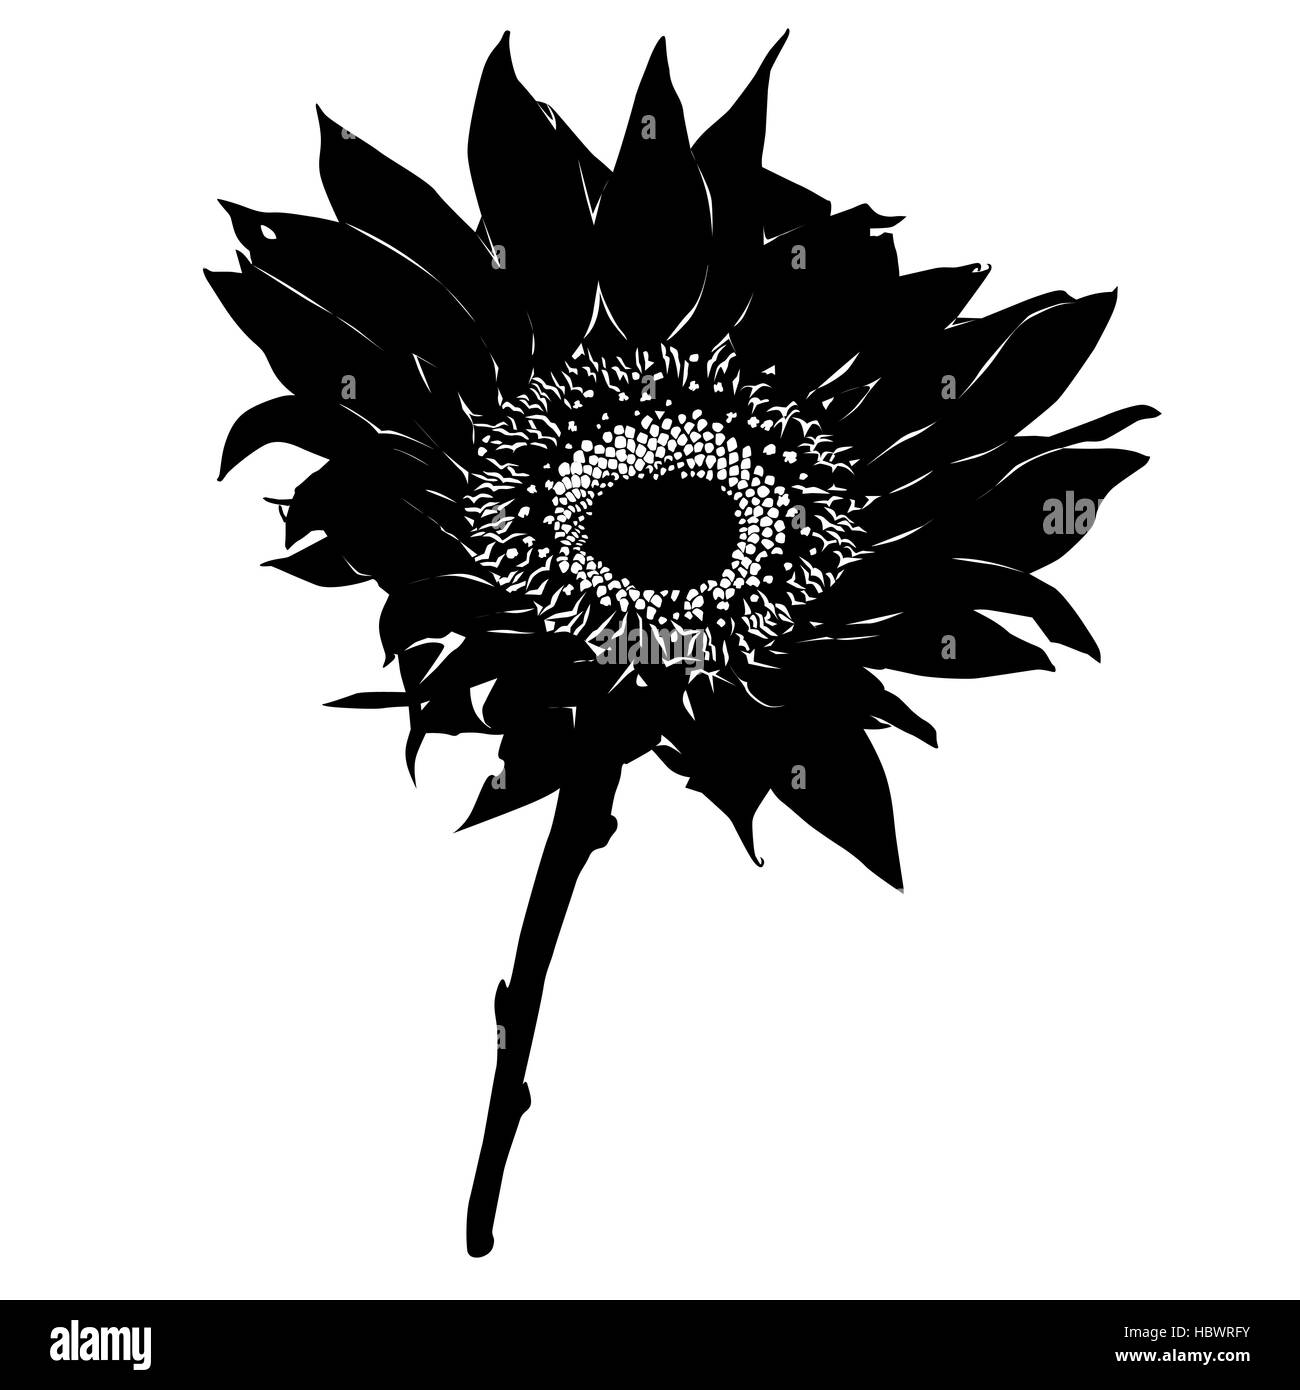 Sunflower Silhouette Stock Photo Alamy Sunflower silhouette, lake george, ny. https www alamy com stock photo sunflower silhouette 127801071 html